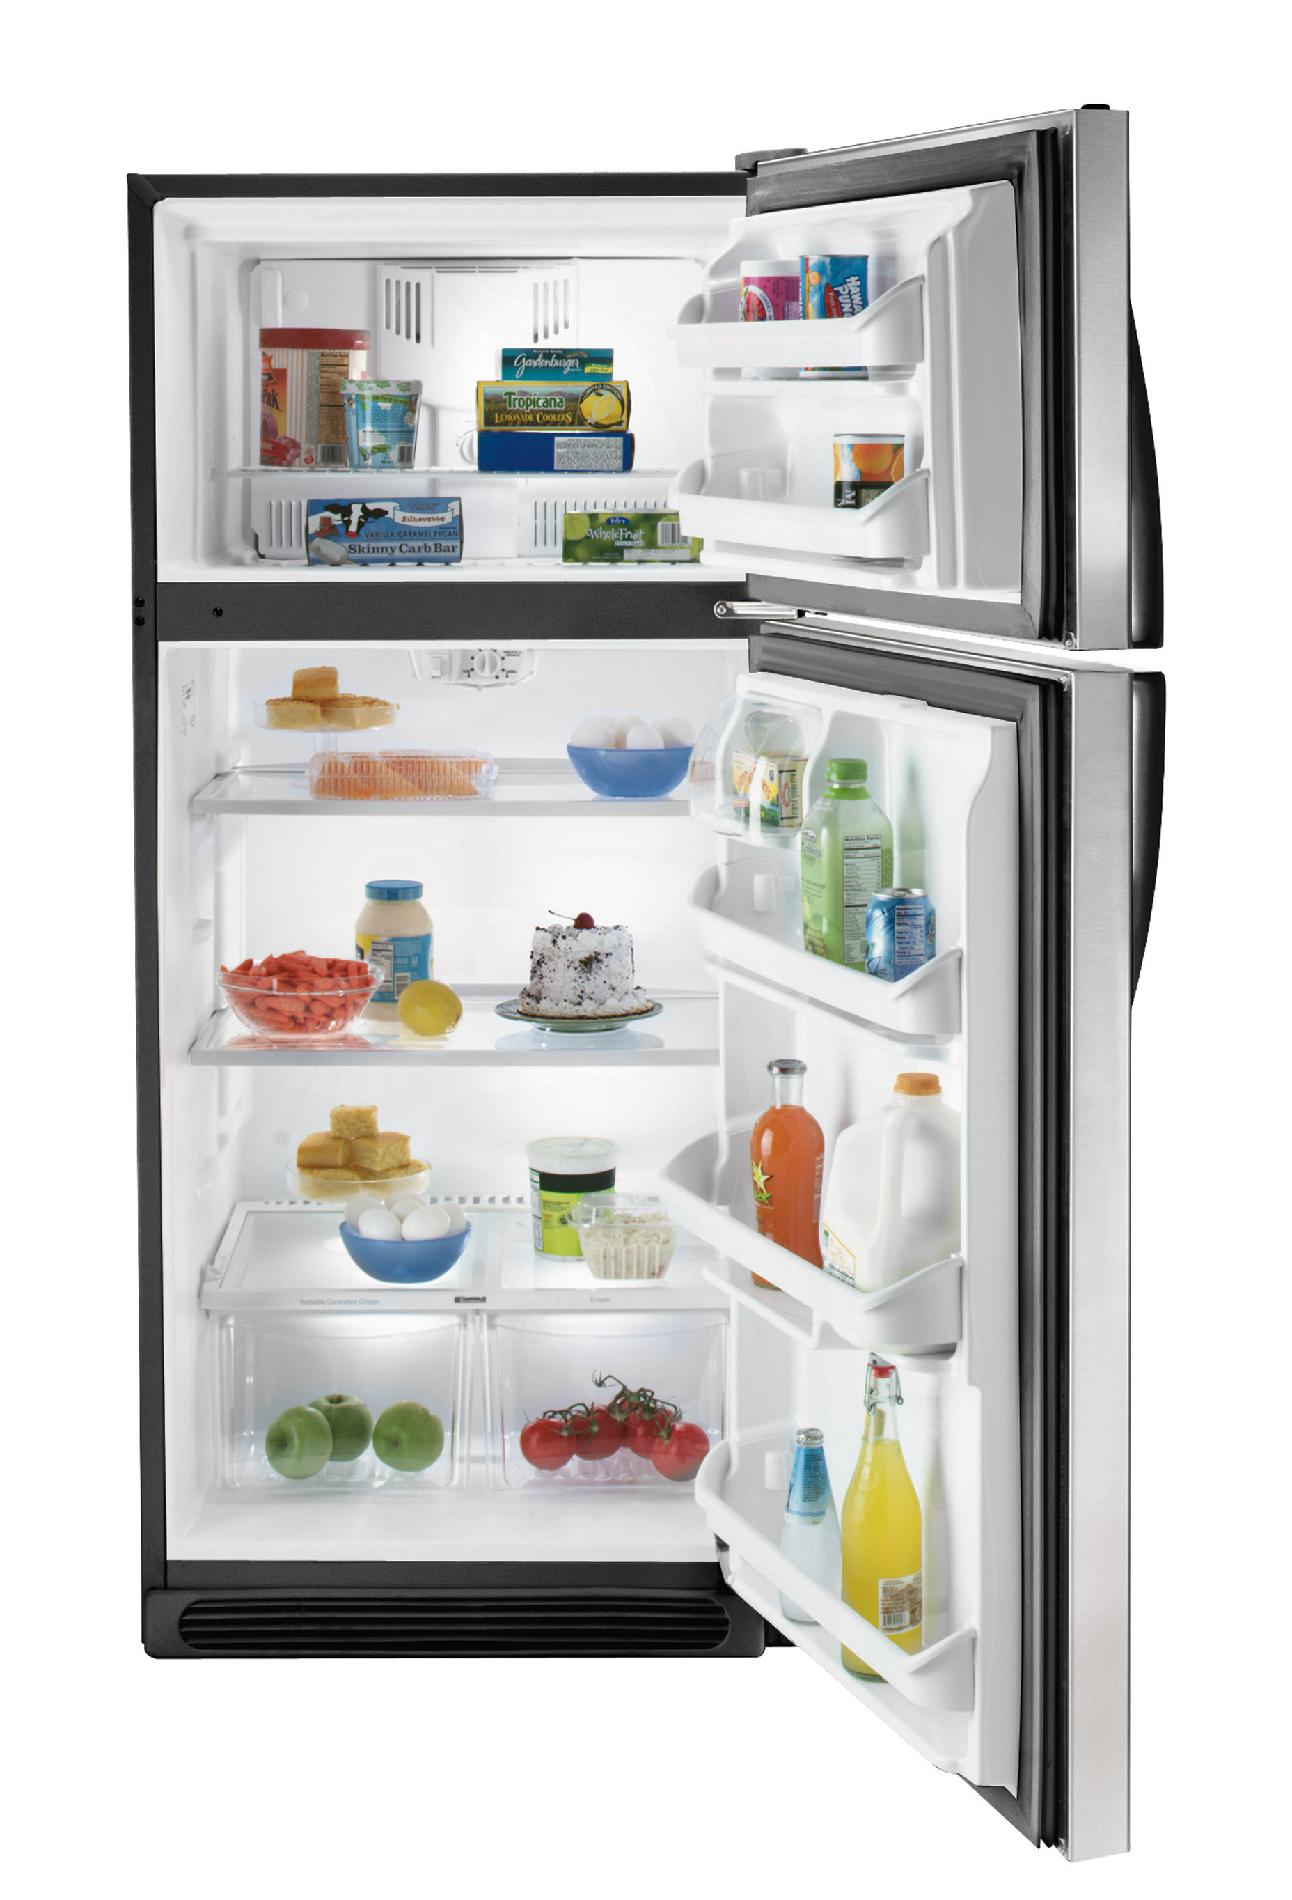 Kenmore 18.2 cu. ft. Top-Freezer Refrigerator - Stainless Steel